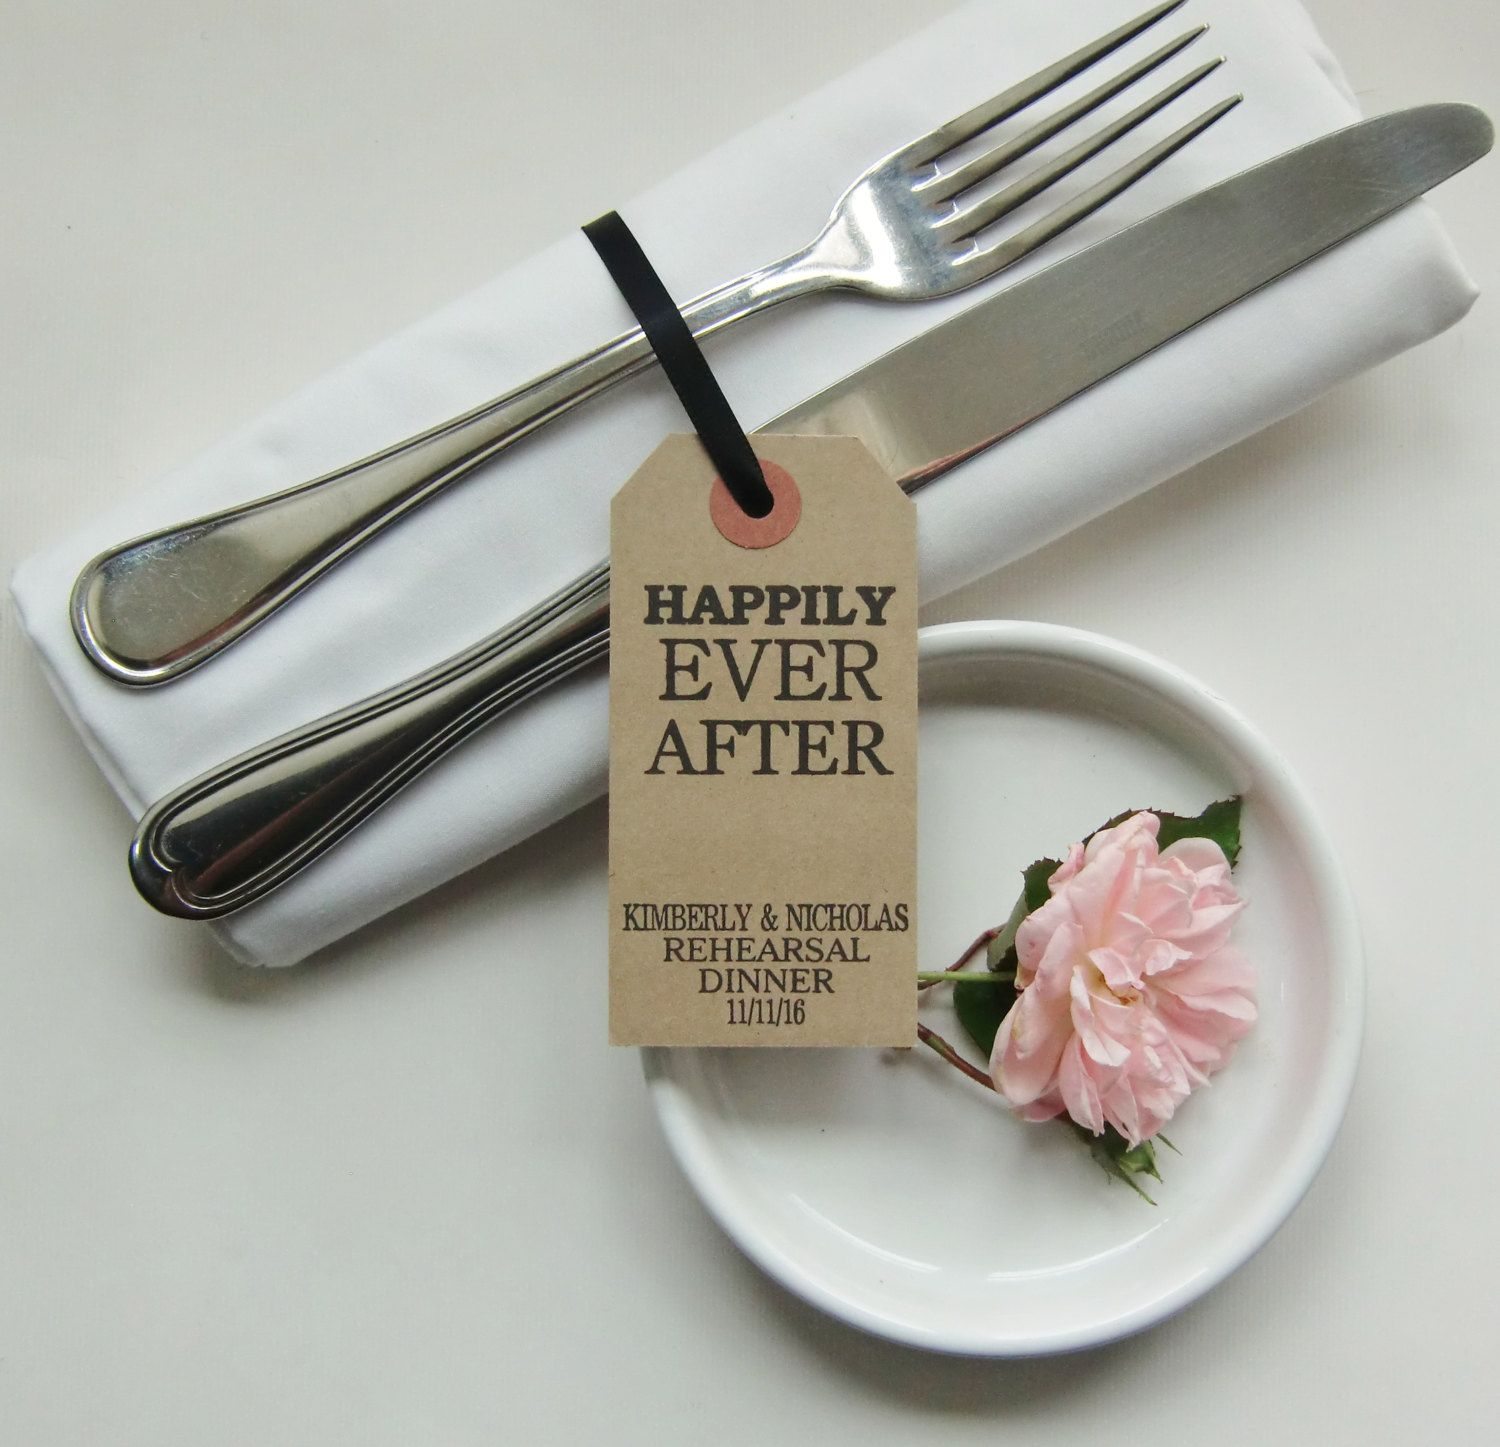 Rehearsal Dinner: Rehearsal Dinner Place Cards-HAPPILY EVER AFTER-Rehearsal